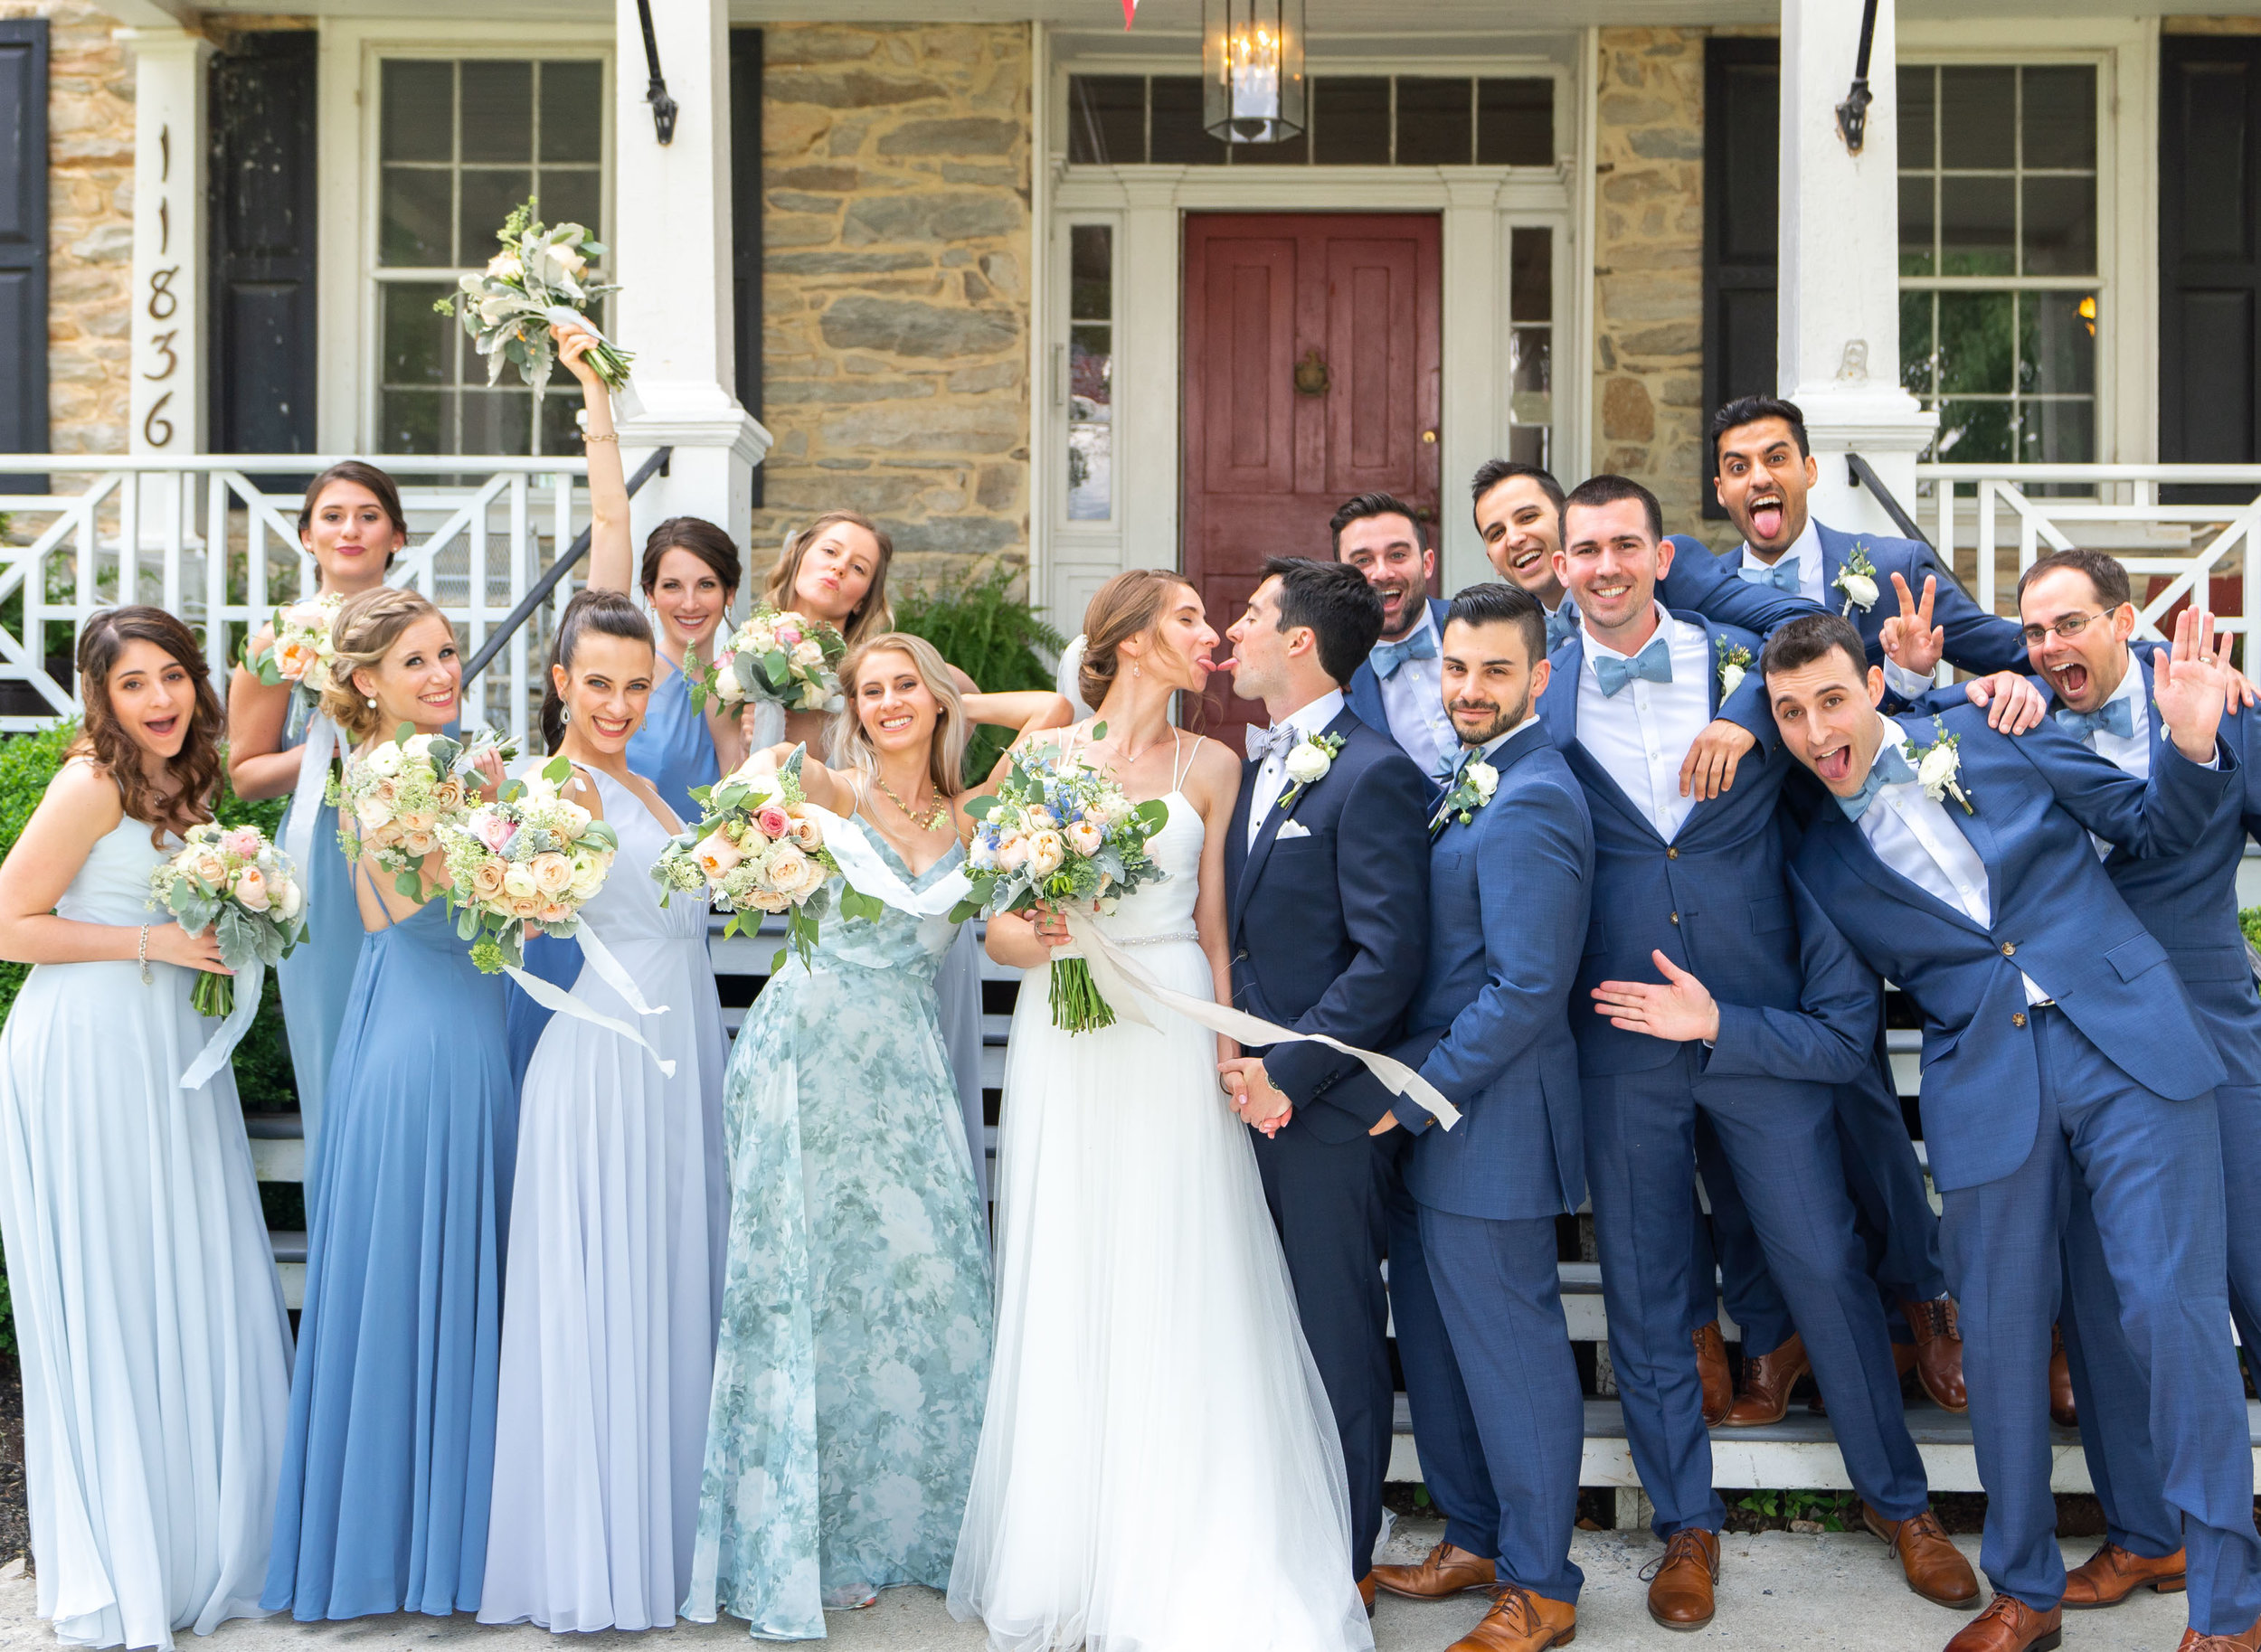 Bridesmaids in light blue dresses from joanna august, jenny you and bhldn. Bride wearing Theia wedding gown